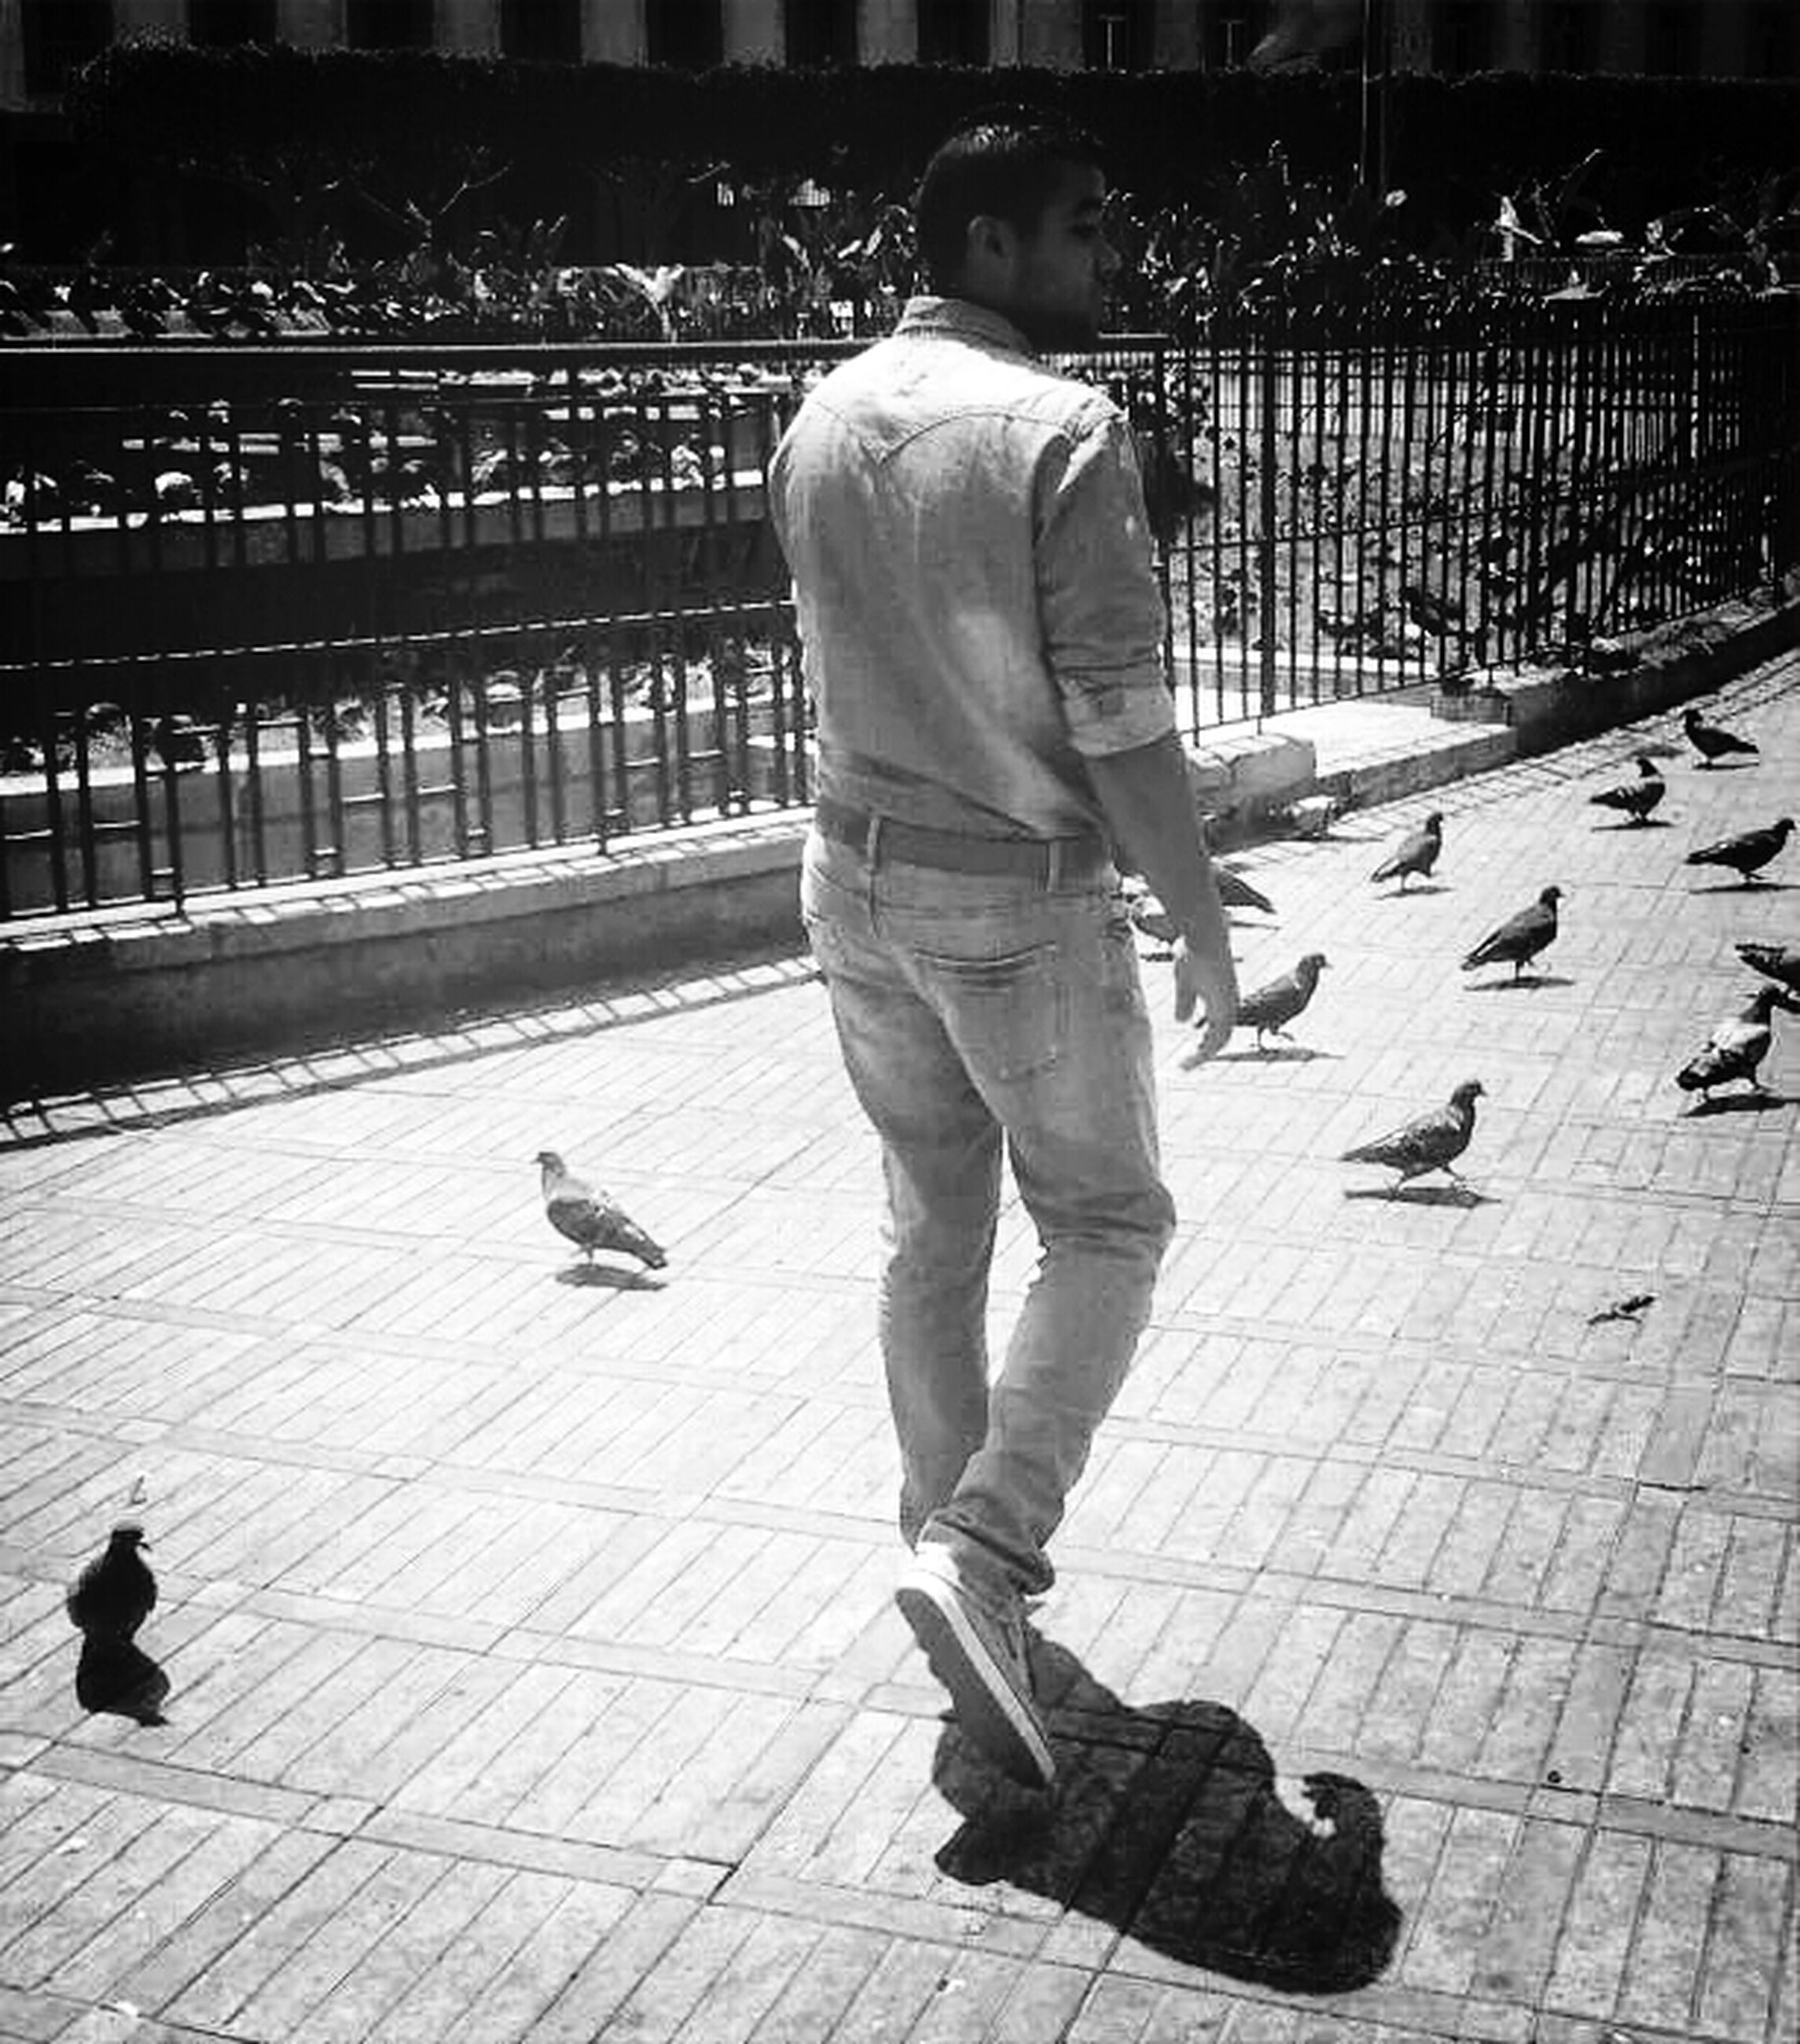 full length, lifestyles, bird, leisure activity, casual clothing, men, childhood, animal themes, walking, street, boys, rear view, sunlight, sidewalk, togetherness, shadow, city, person